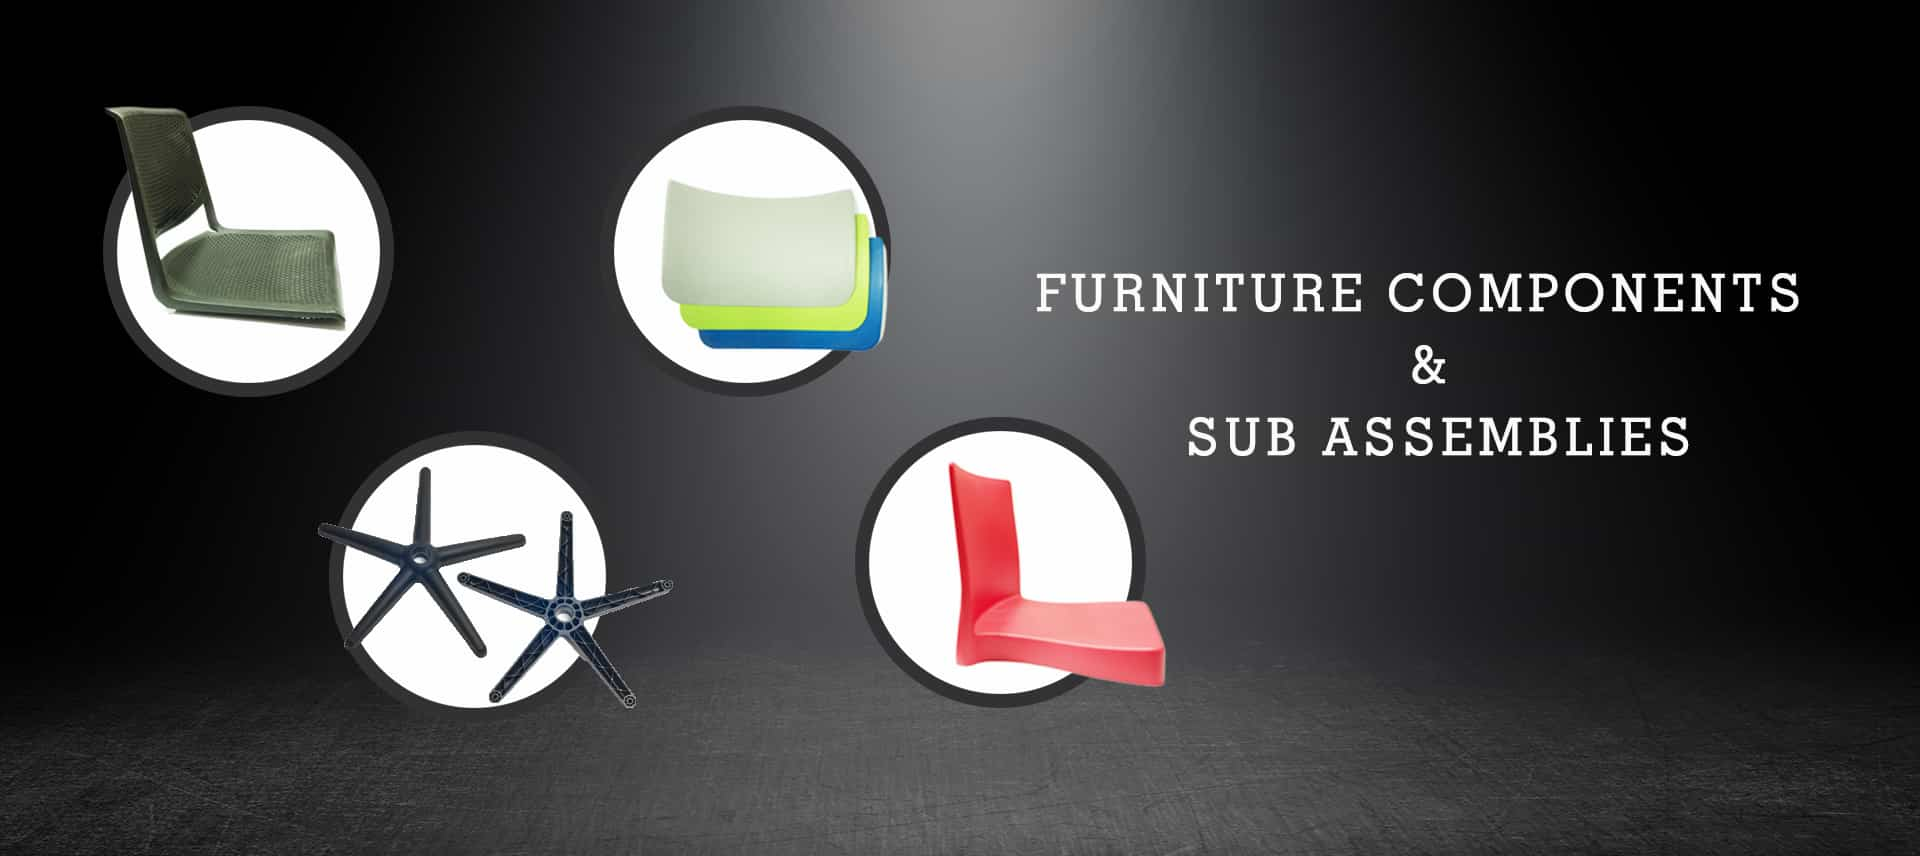 Furniture Components & Sub Assemblies